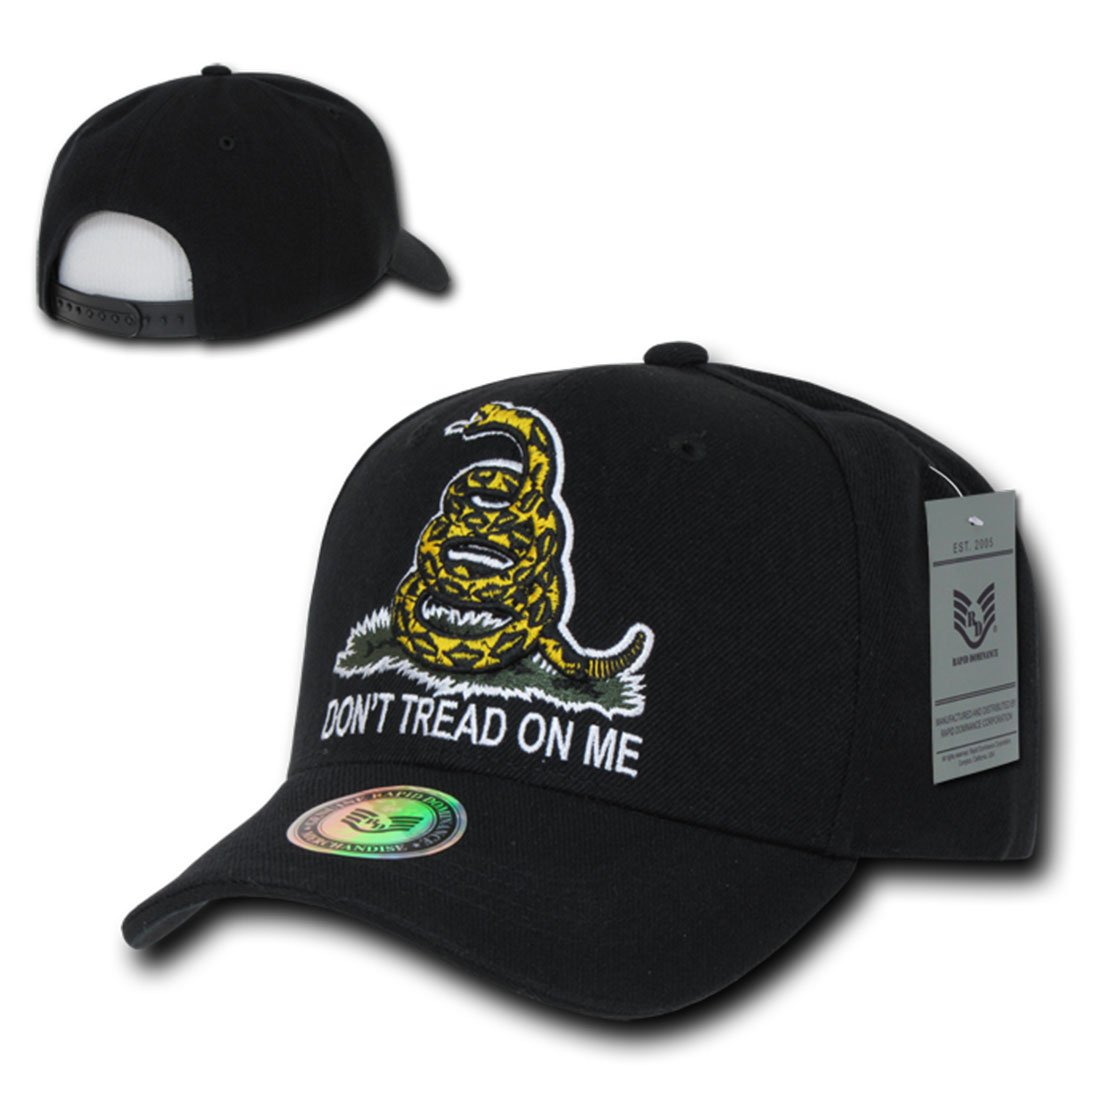 d29d7054 Rapid Dom Dont Tread On Me Gadsden Flag Baseball Caps A02 Black: Amazon.ca:  Clothing & Accessories